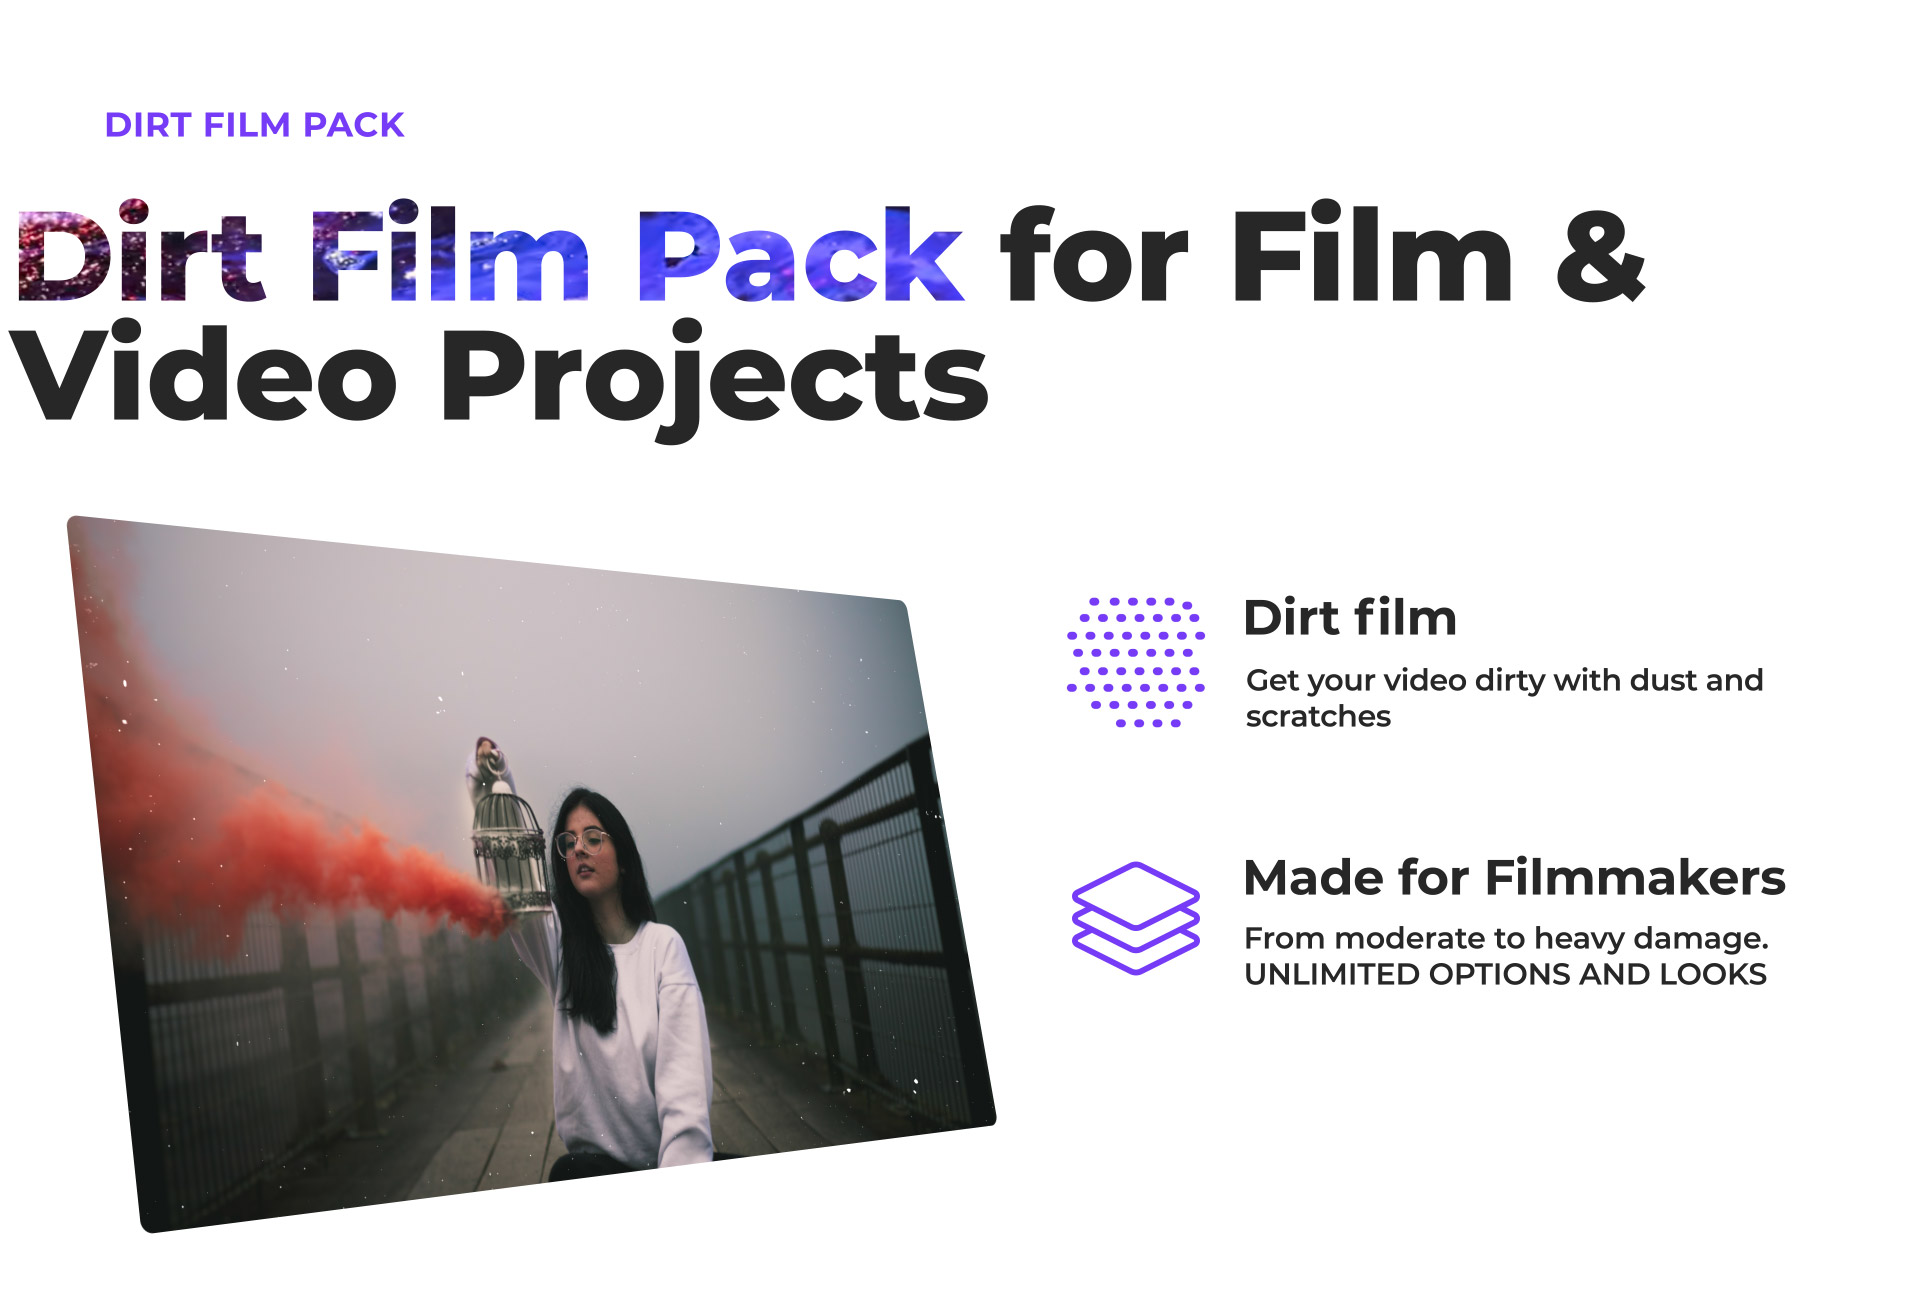 Dirt-Film-Pack-01.jpg